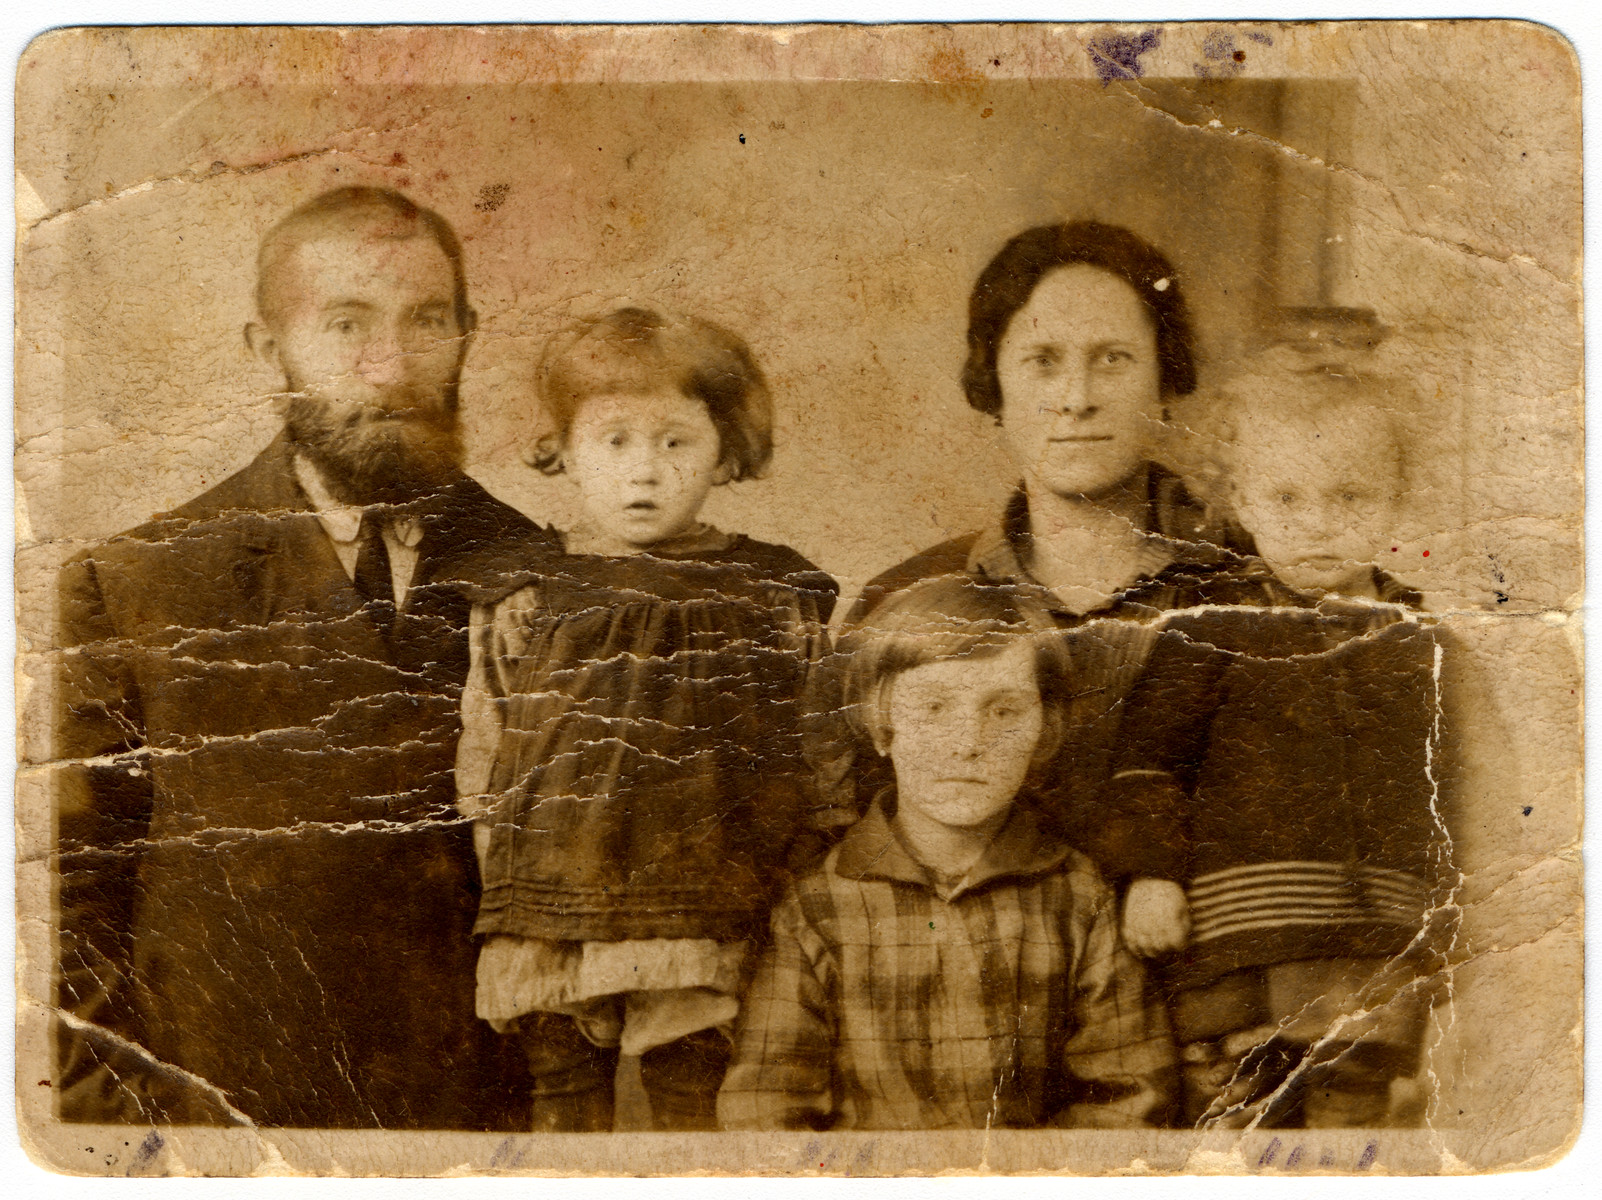 Prewar portrait of the Rechenman family in prewar Pulawy.  Pictured from left to right are Shmuel, Bayla Gitel, Yocheved, Ruchel and Elcia.